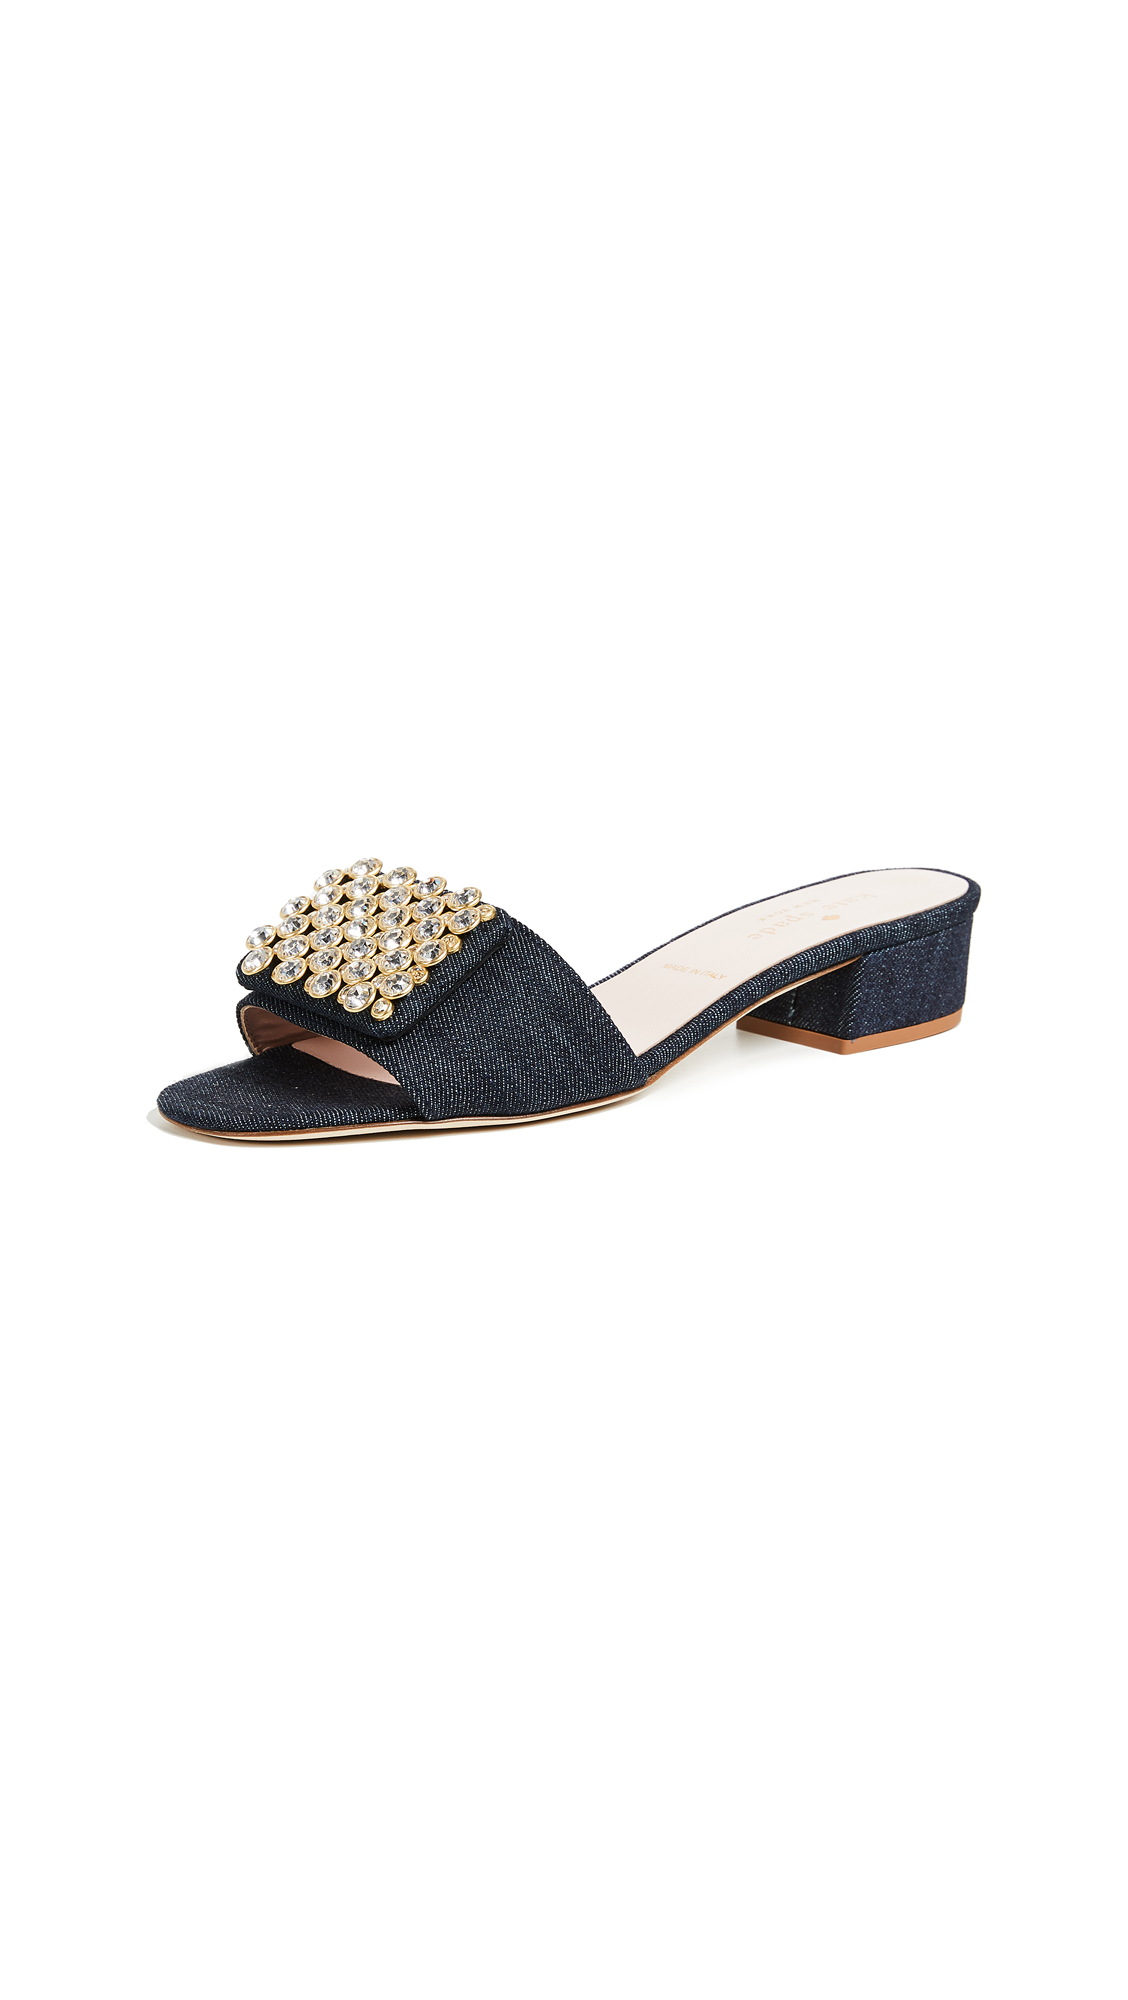 Kate Spade New York Mazie Block Heel Sandals - Indigo